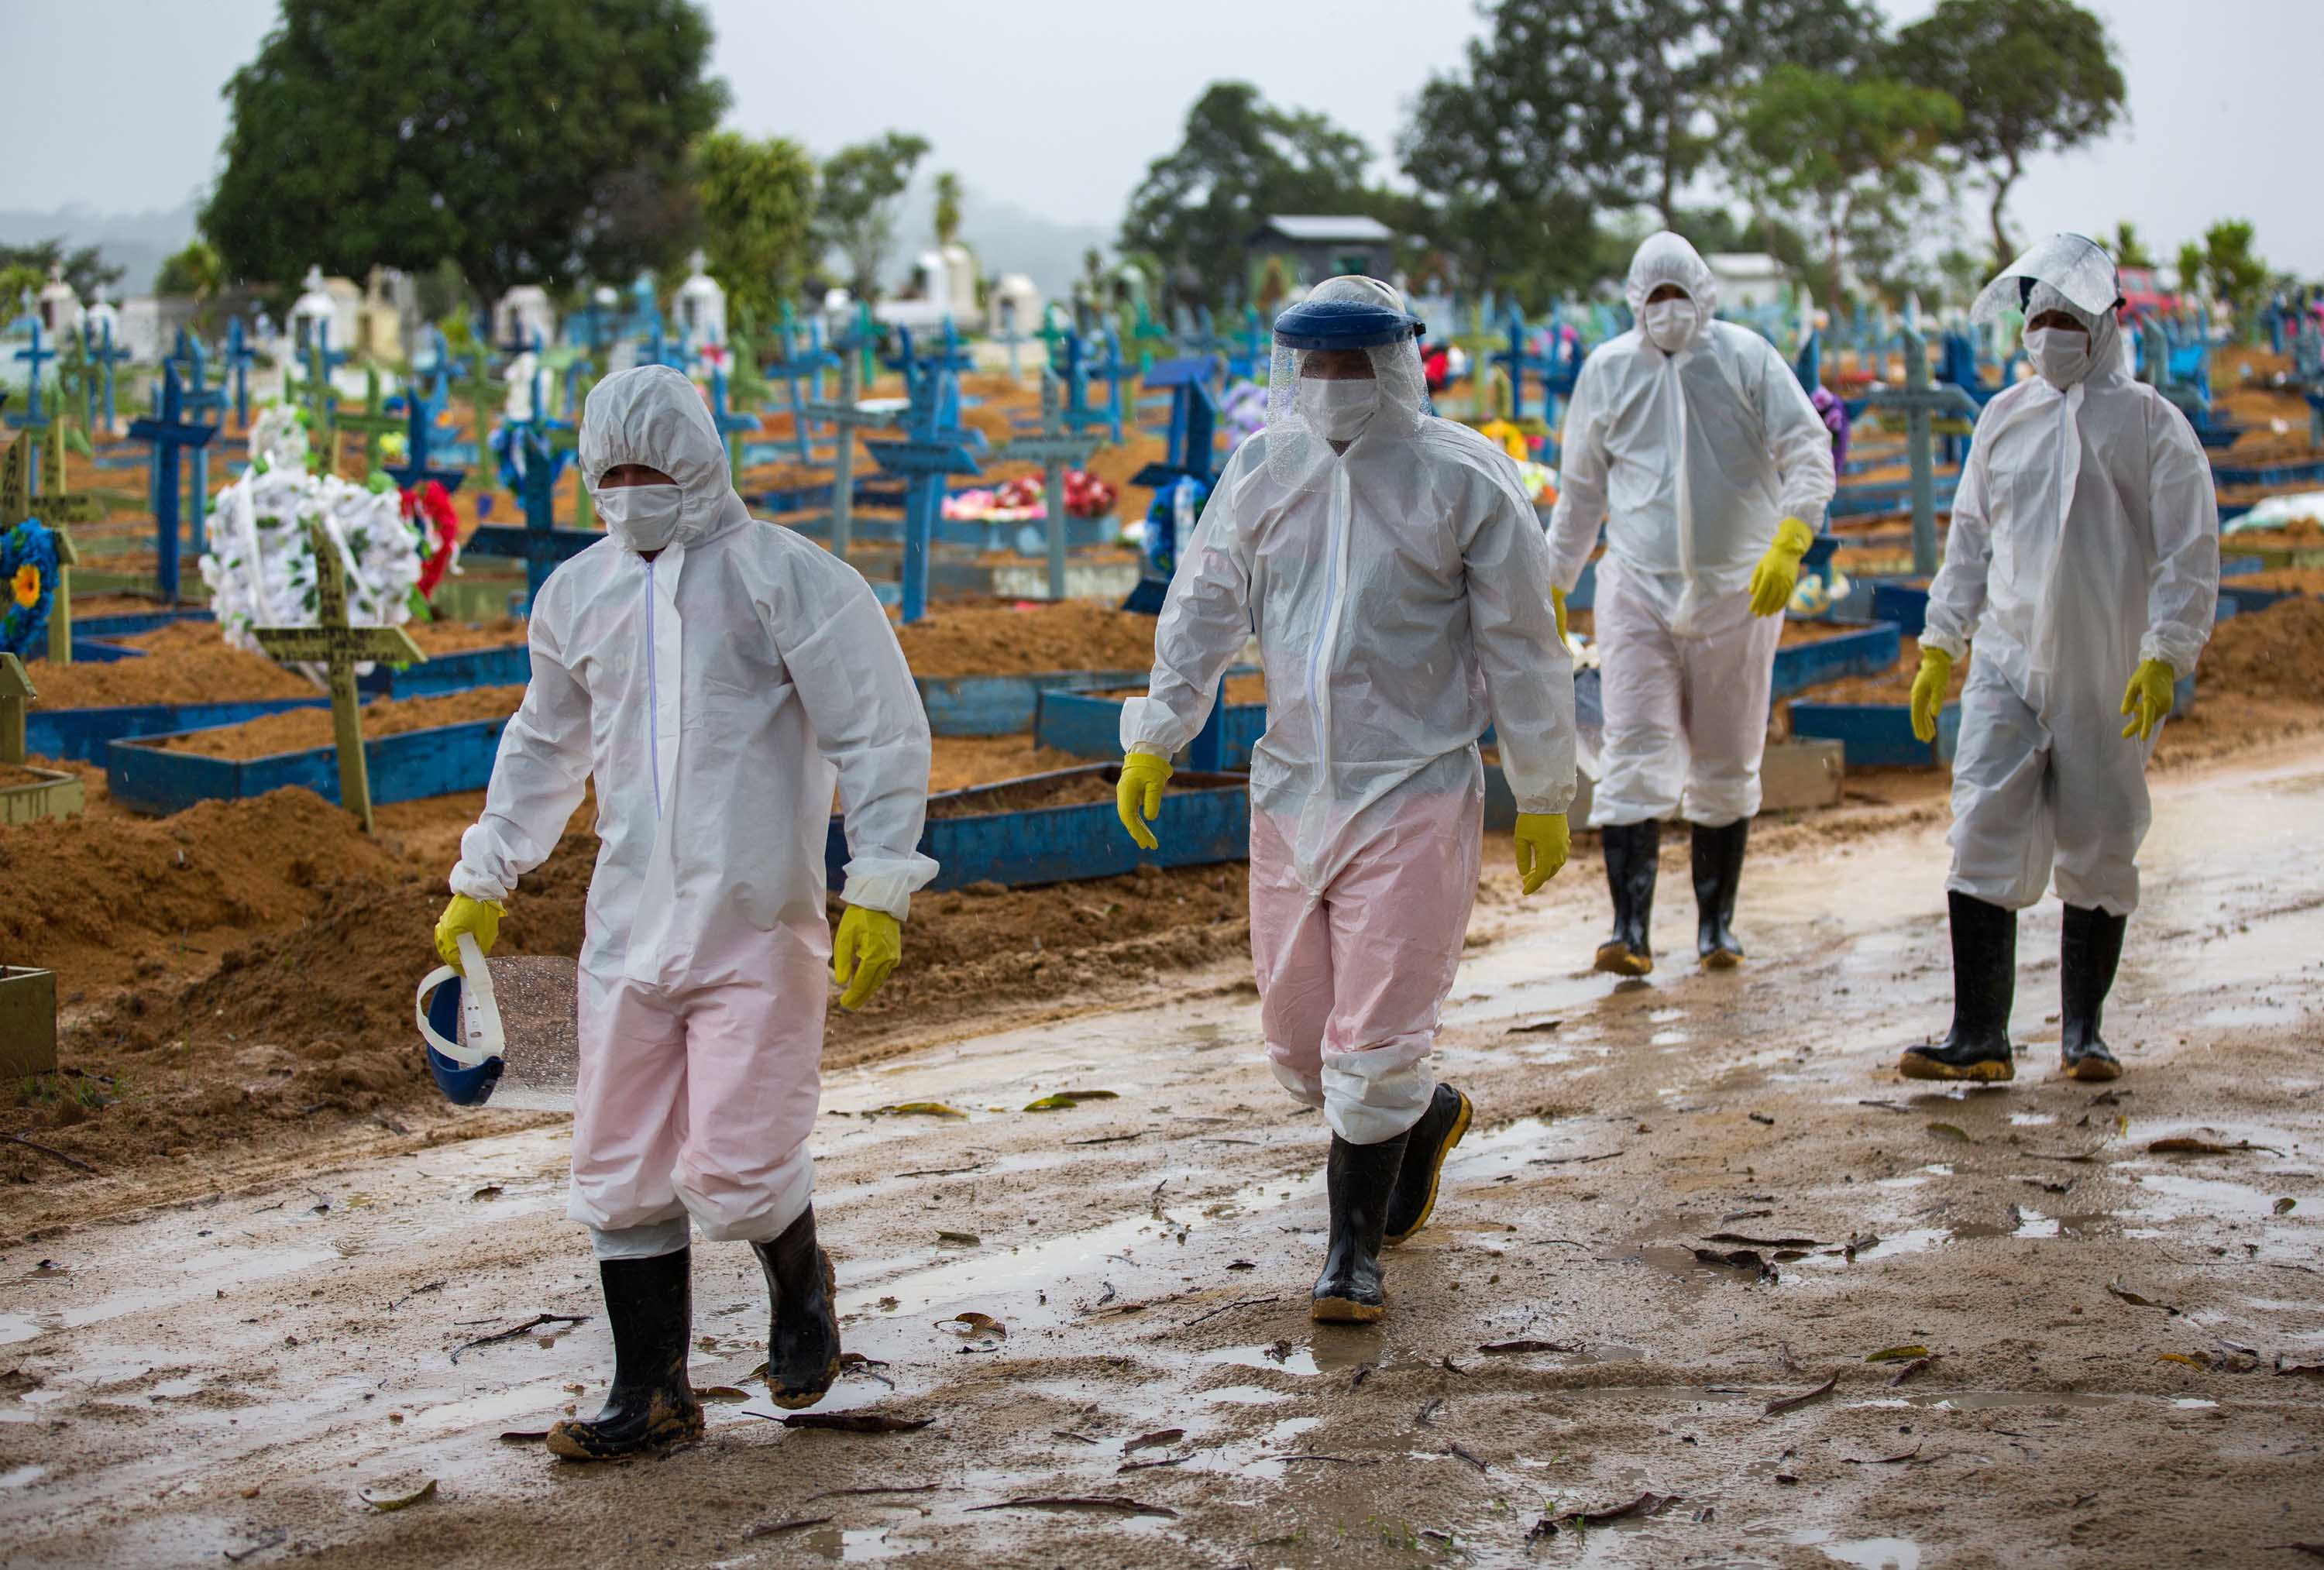 Workers wearing protective suits walk past the graves of COVID-19 victims at the Nossa Senhora Aparecida cemetery, in Manaus, Brazil, on February 25.